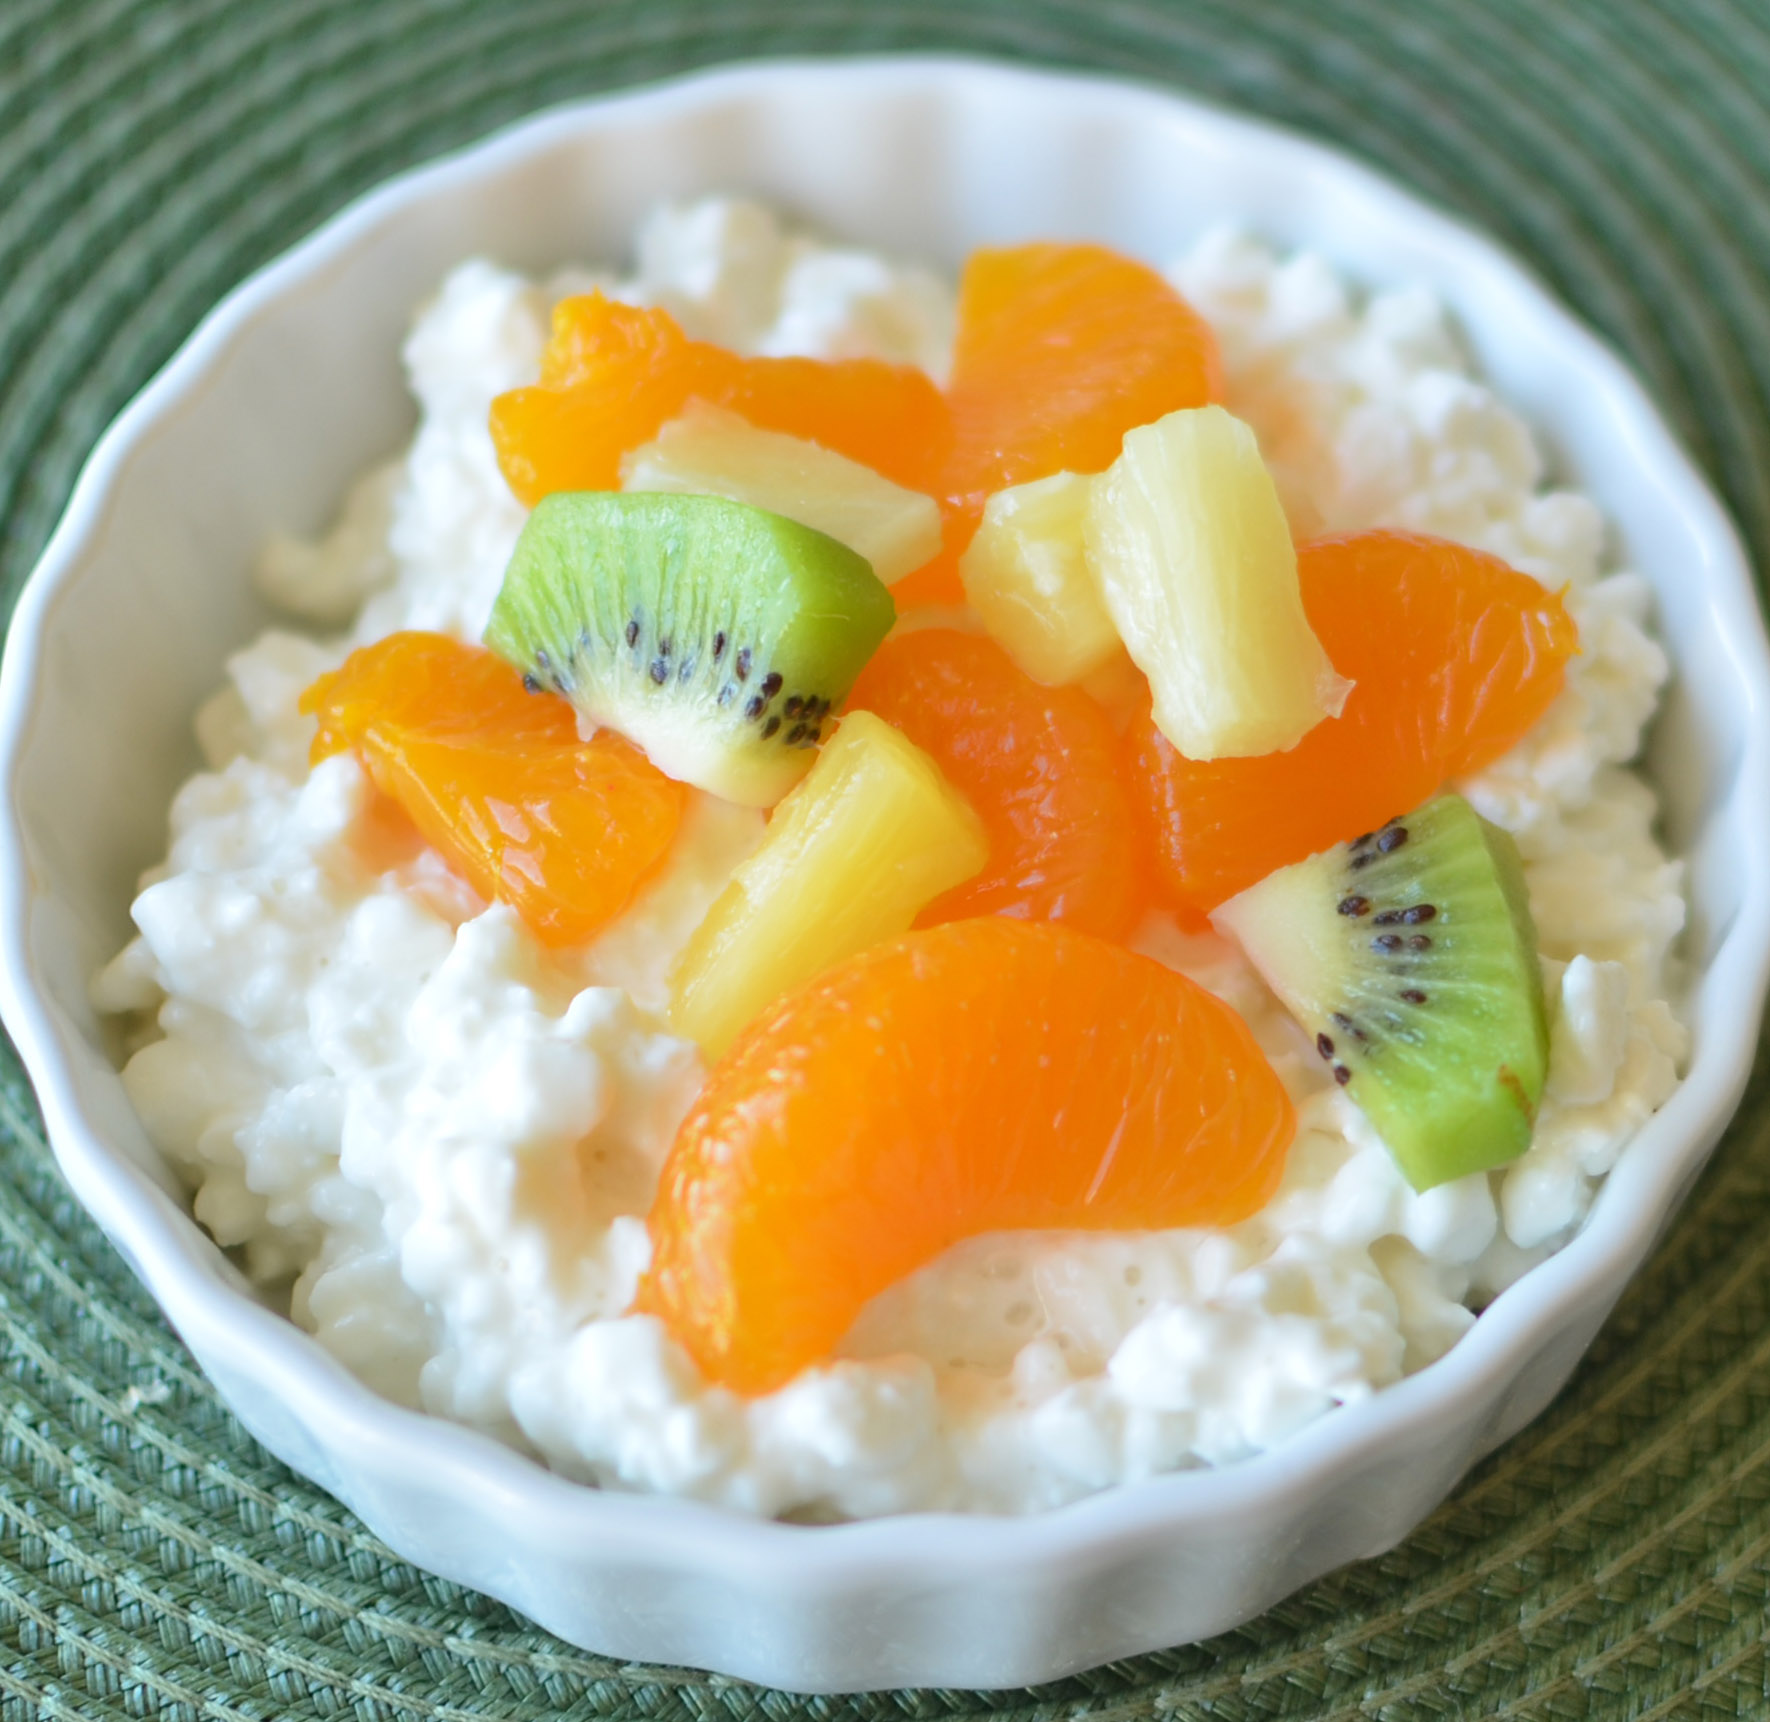 High Protein Snack Healthy Ideas For Kids